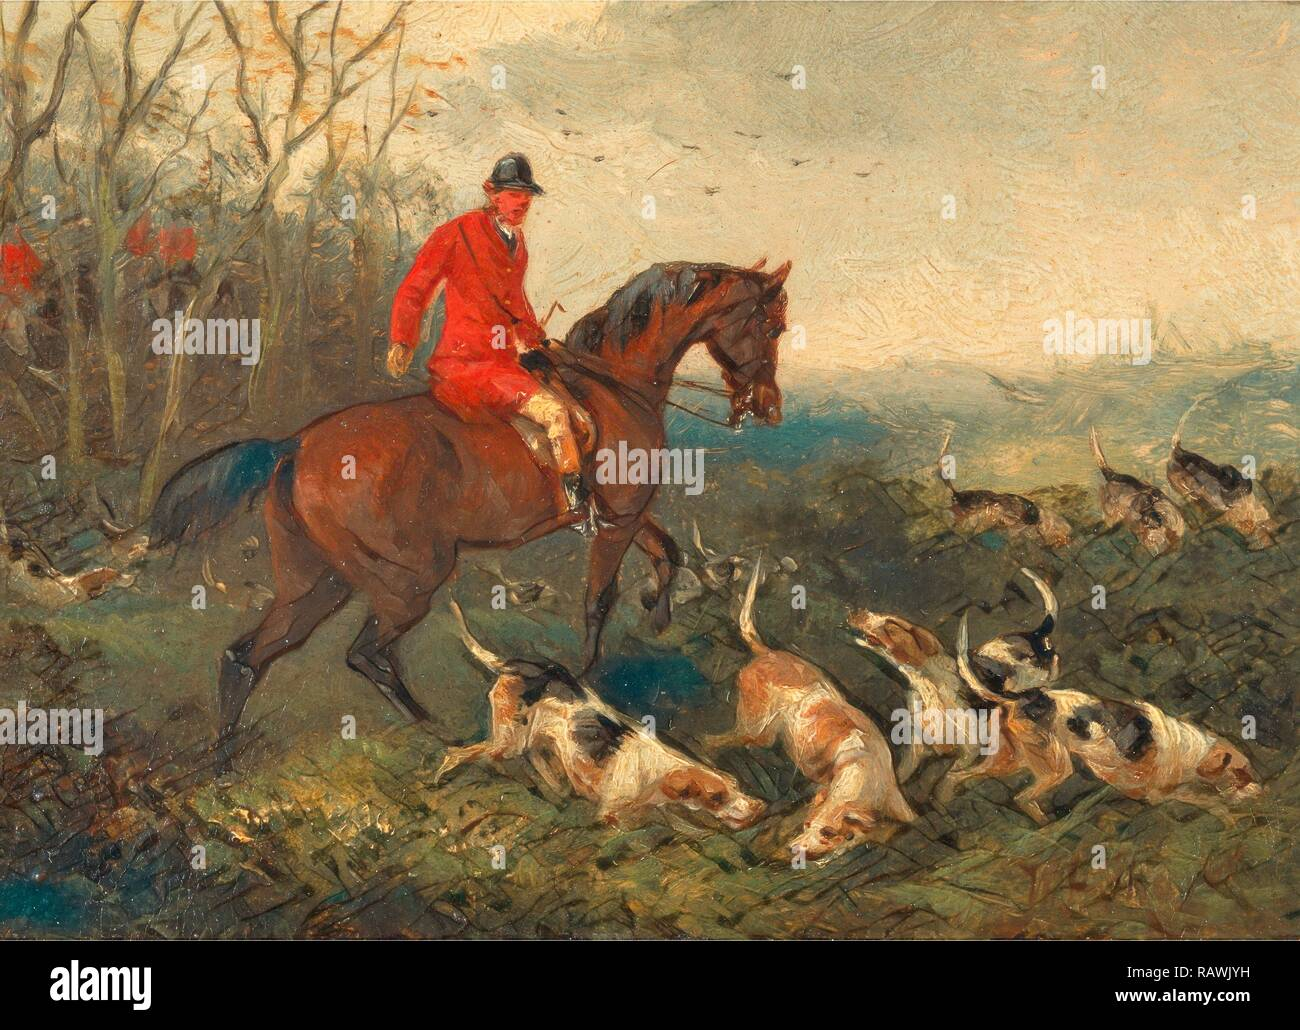 Foxhunting: At Cover Signed and dated in brown paint, lower right: 'WJ Shayer | 6[?]', William J. Shayer, 1811-c.1885 reimagined - Stock Image